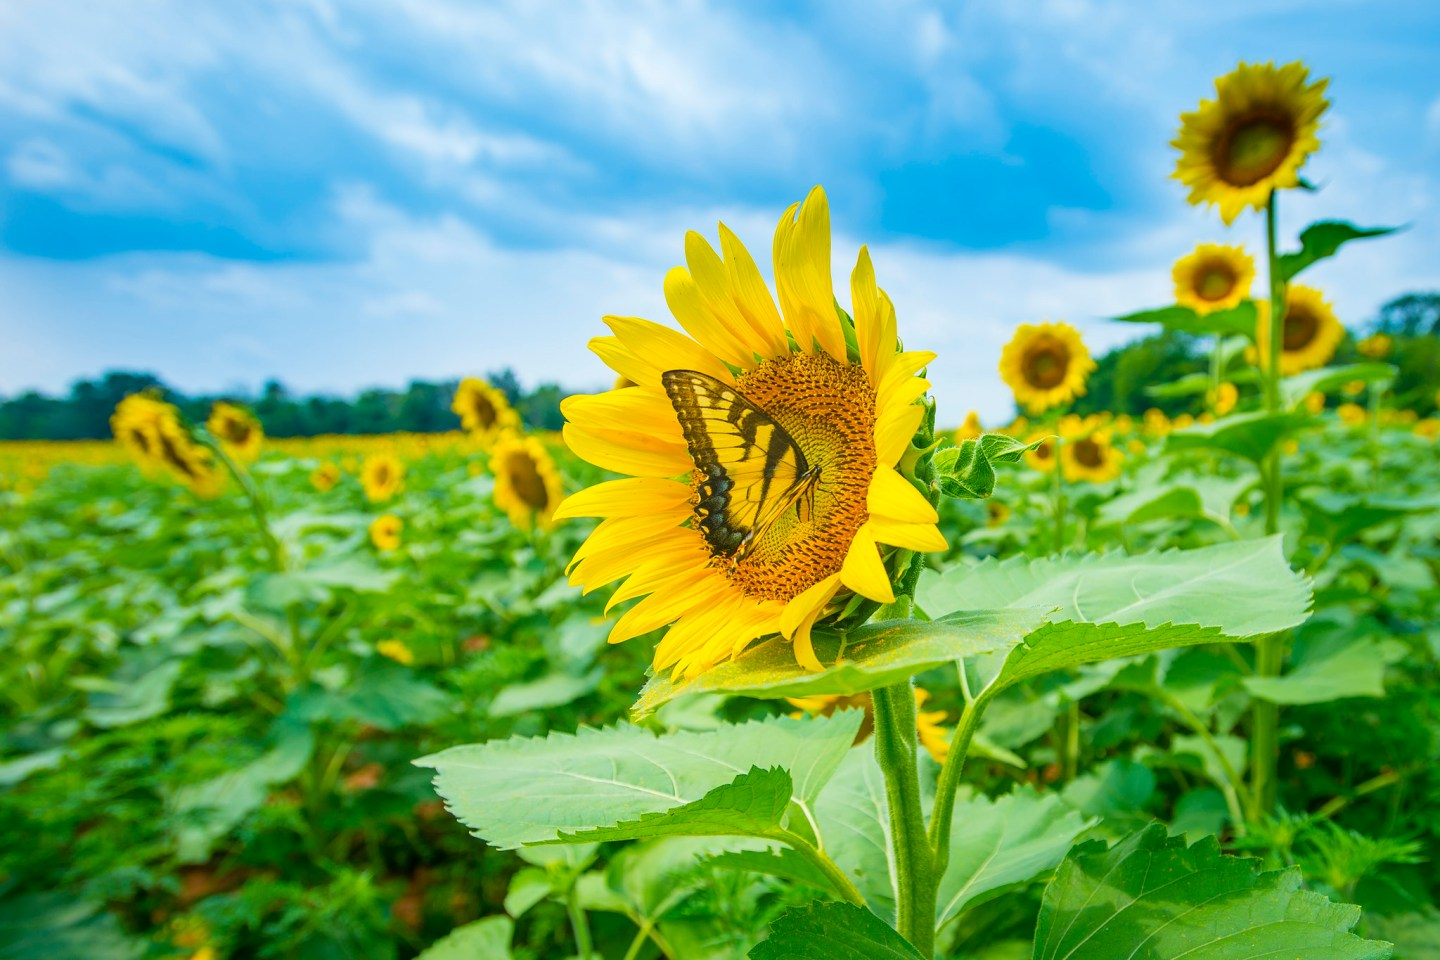 butterfly visits a sunflower